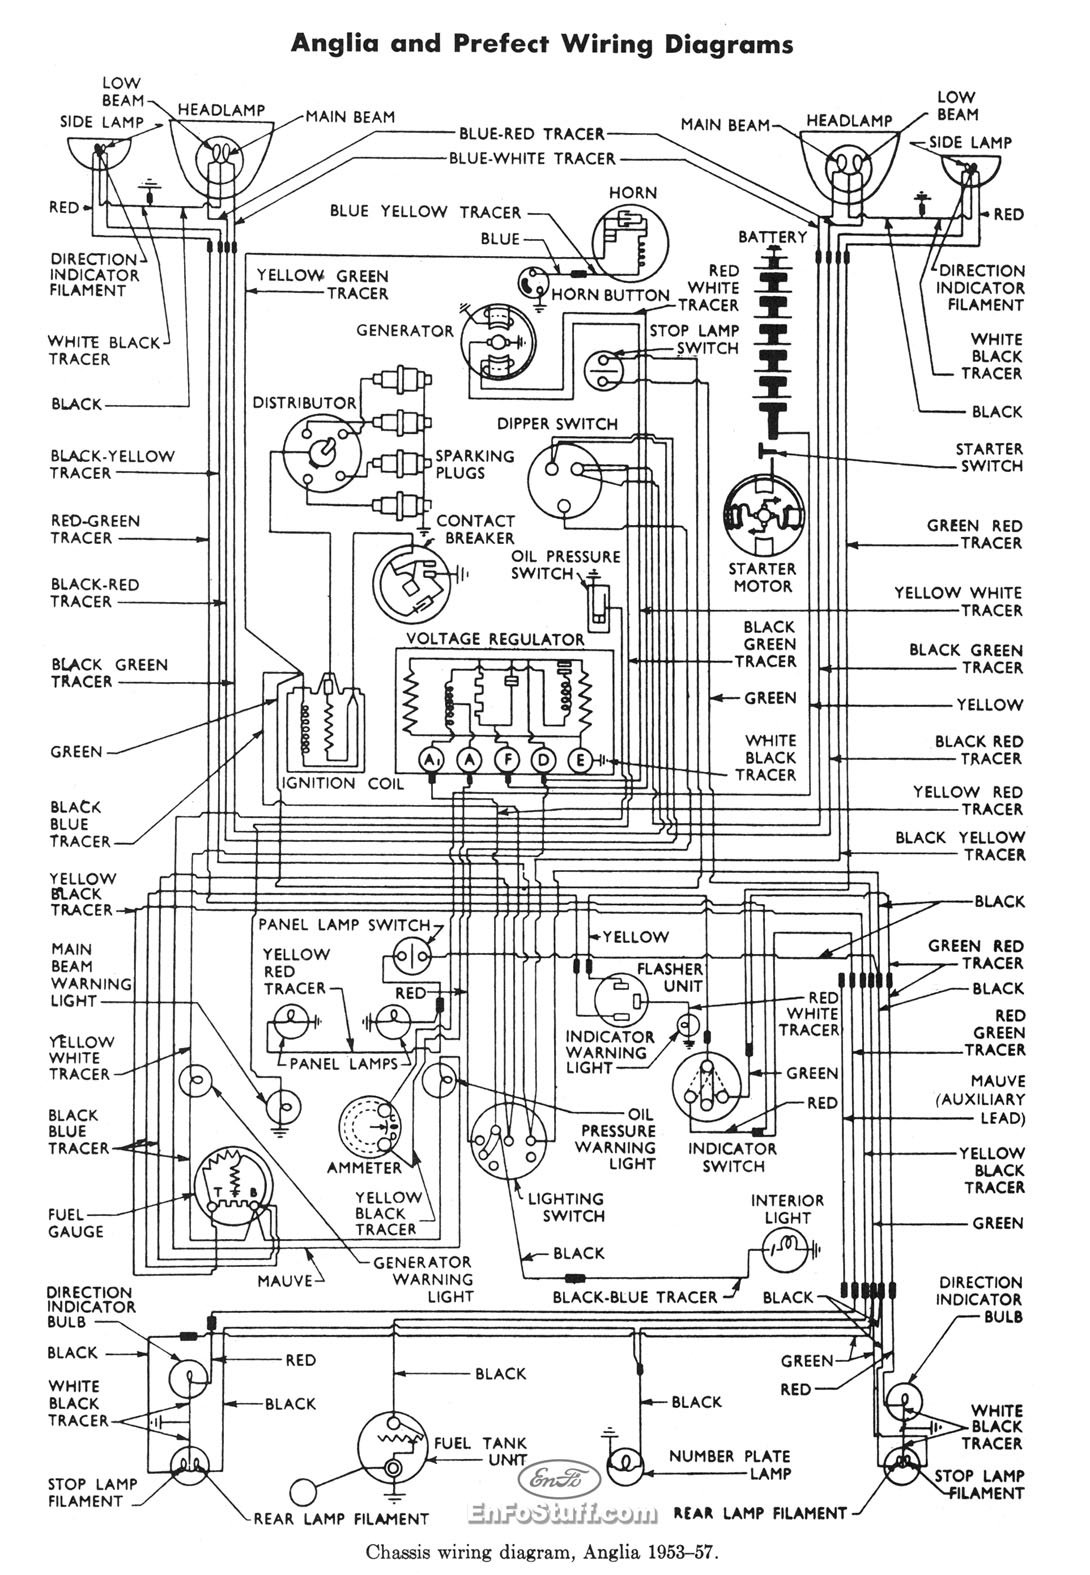 Jeep Interior Wiring Diagram - Auto Electrical Wiring Diagram on